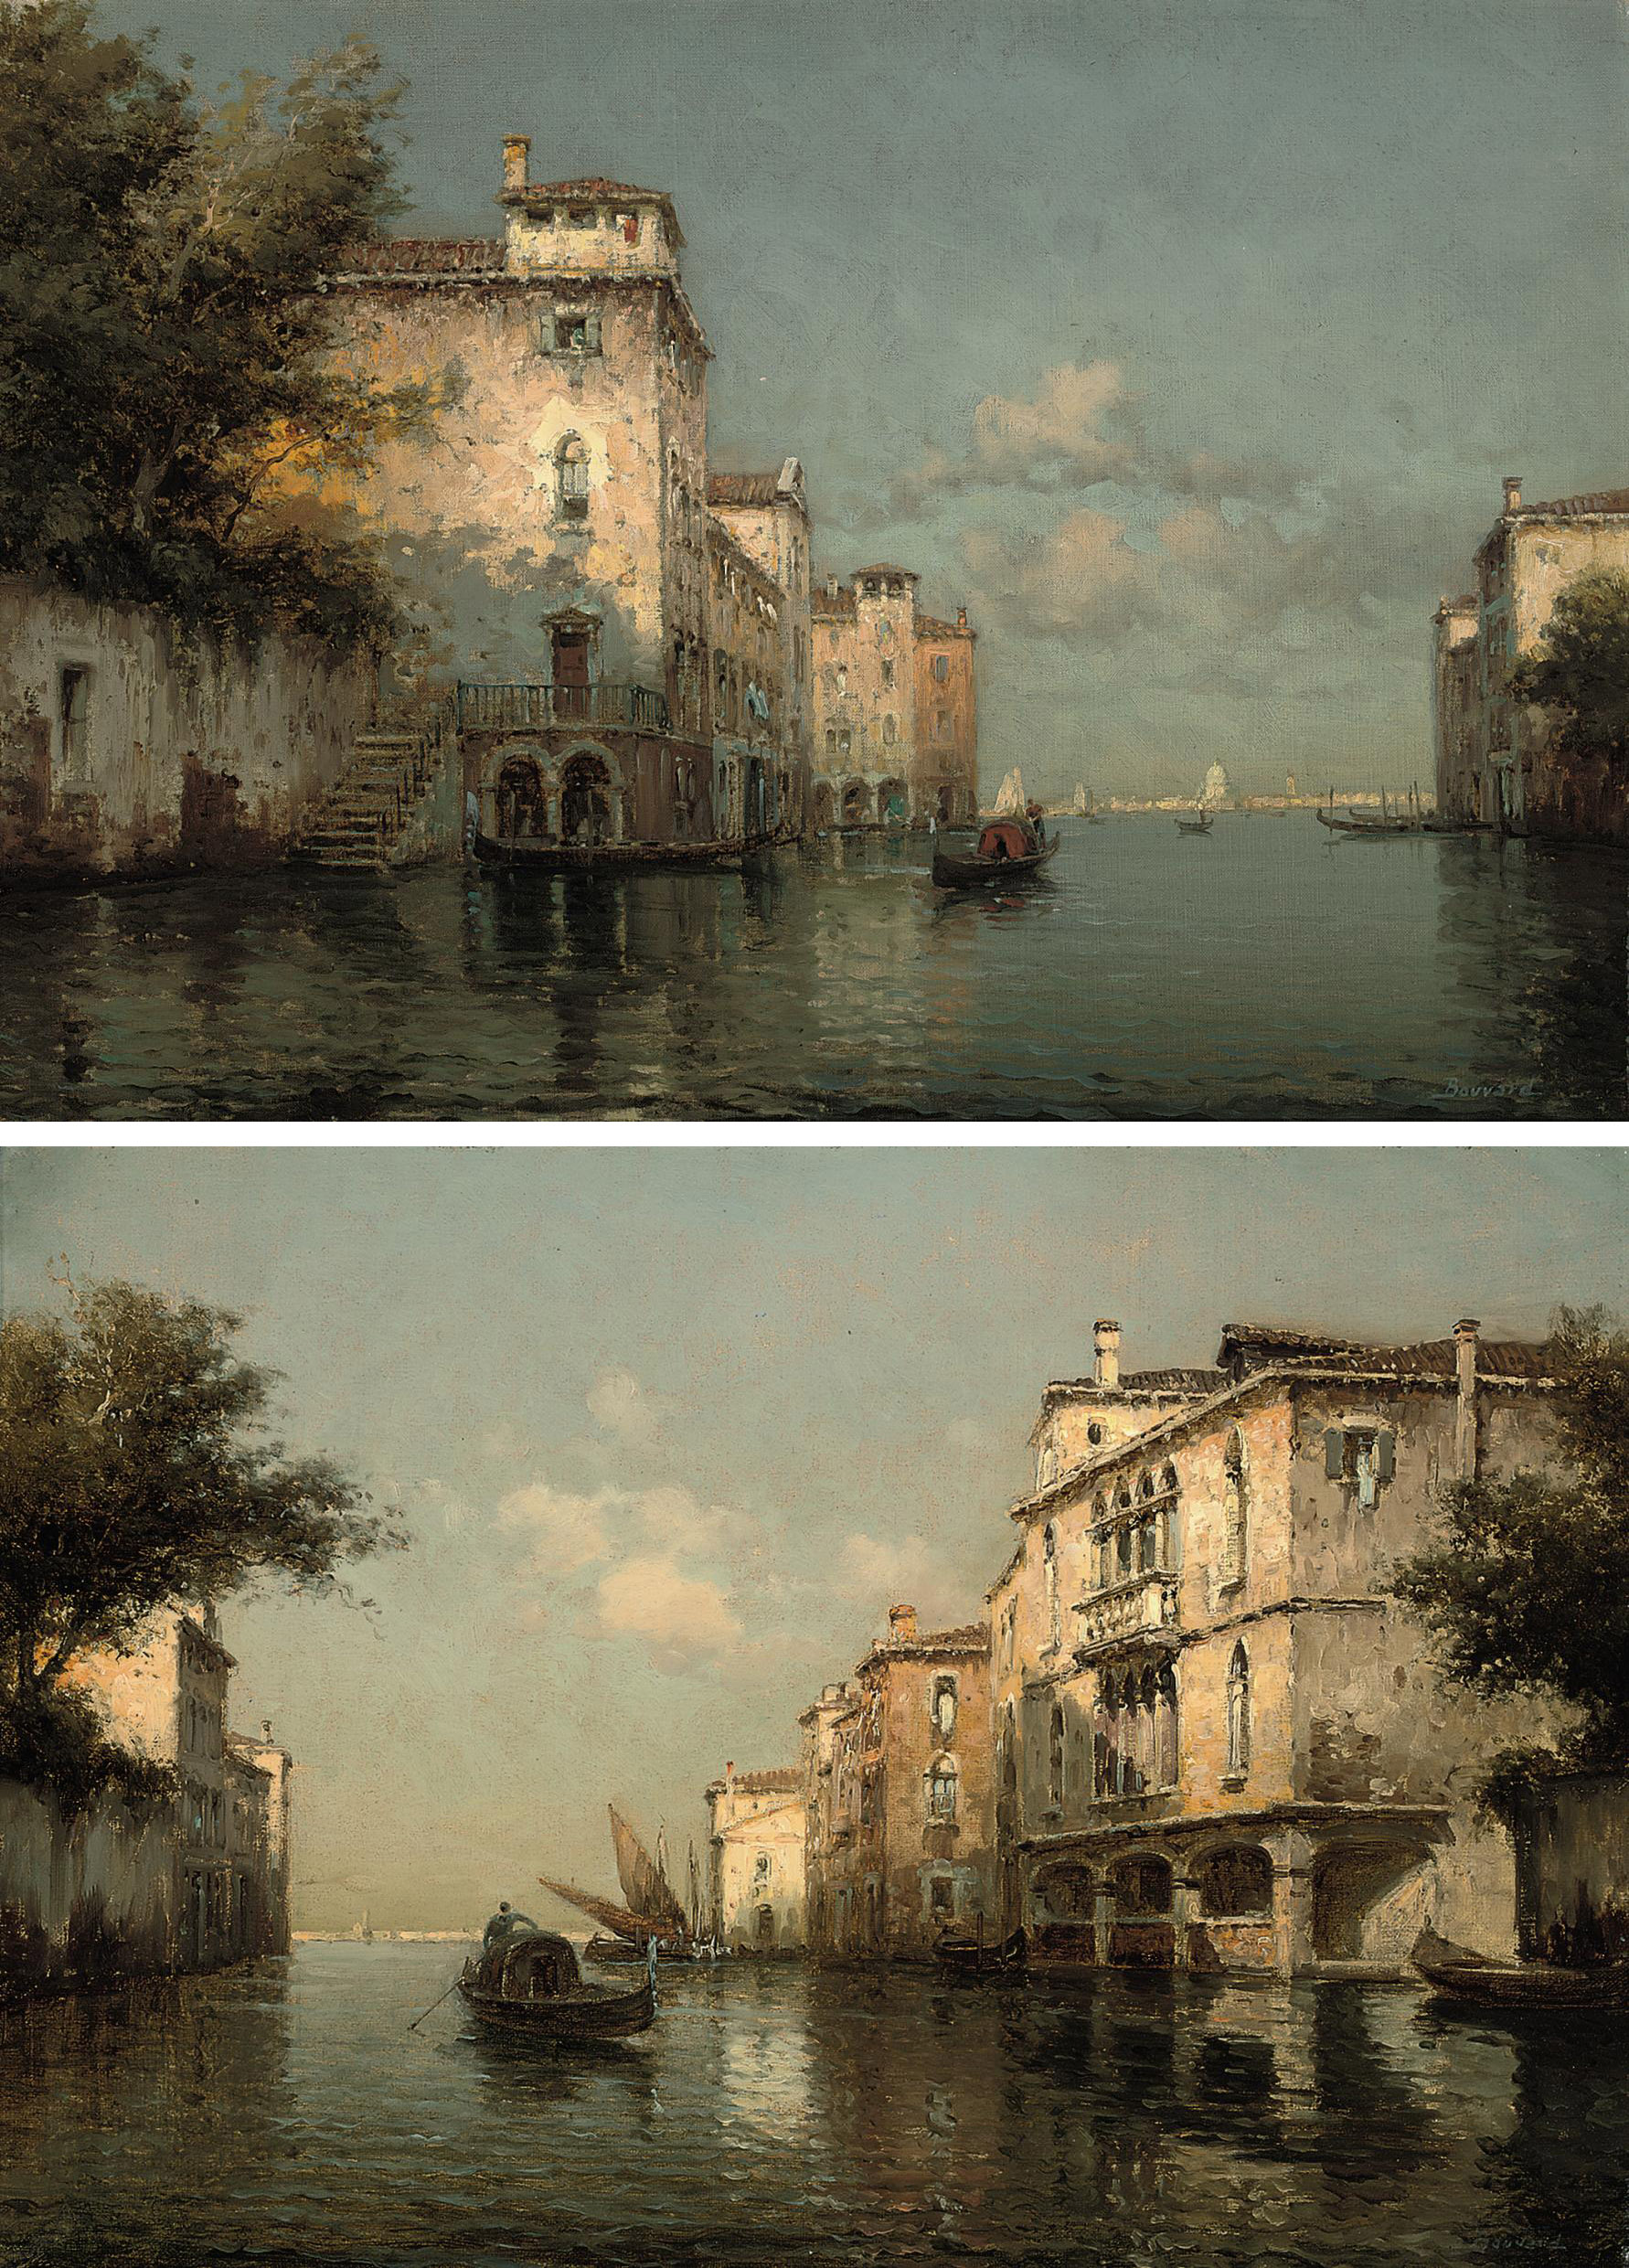 Gondolier on the Grand Canal; and A gondolier on a Venetian backwater